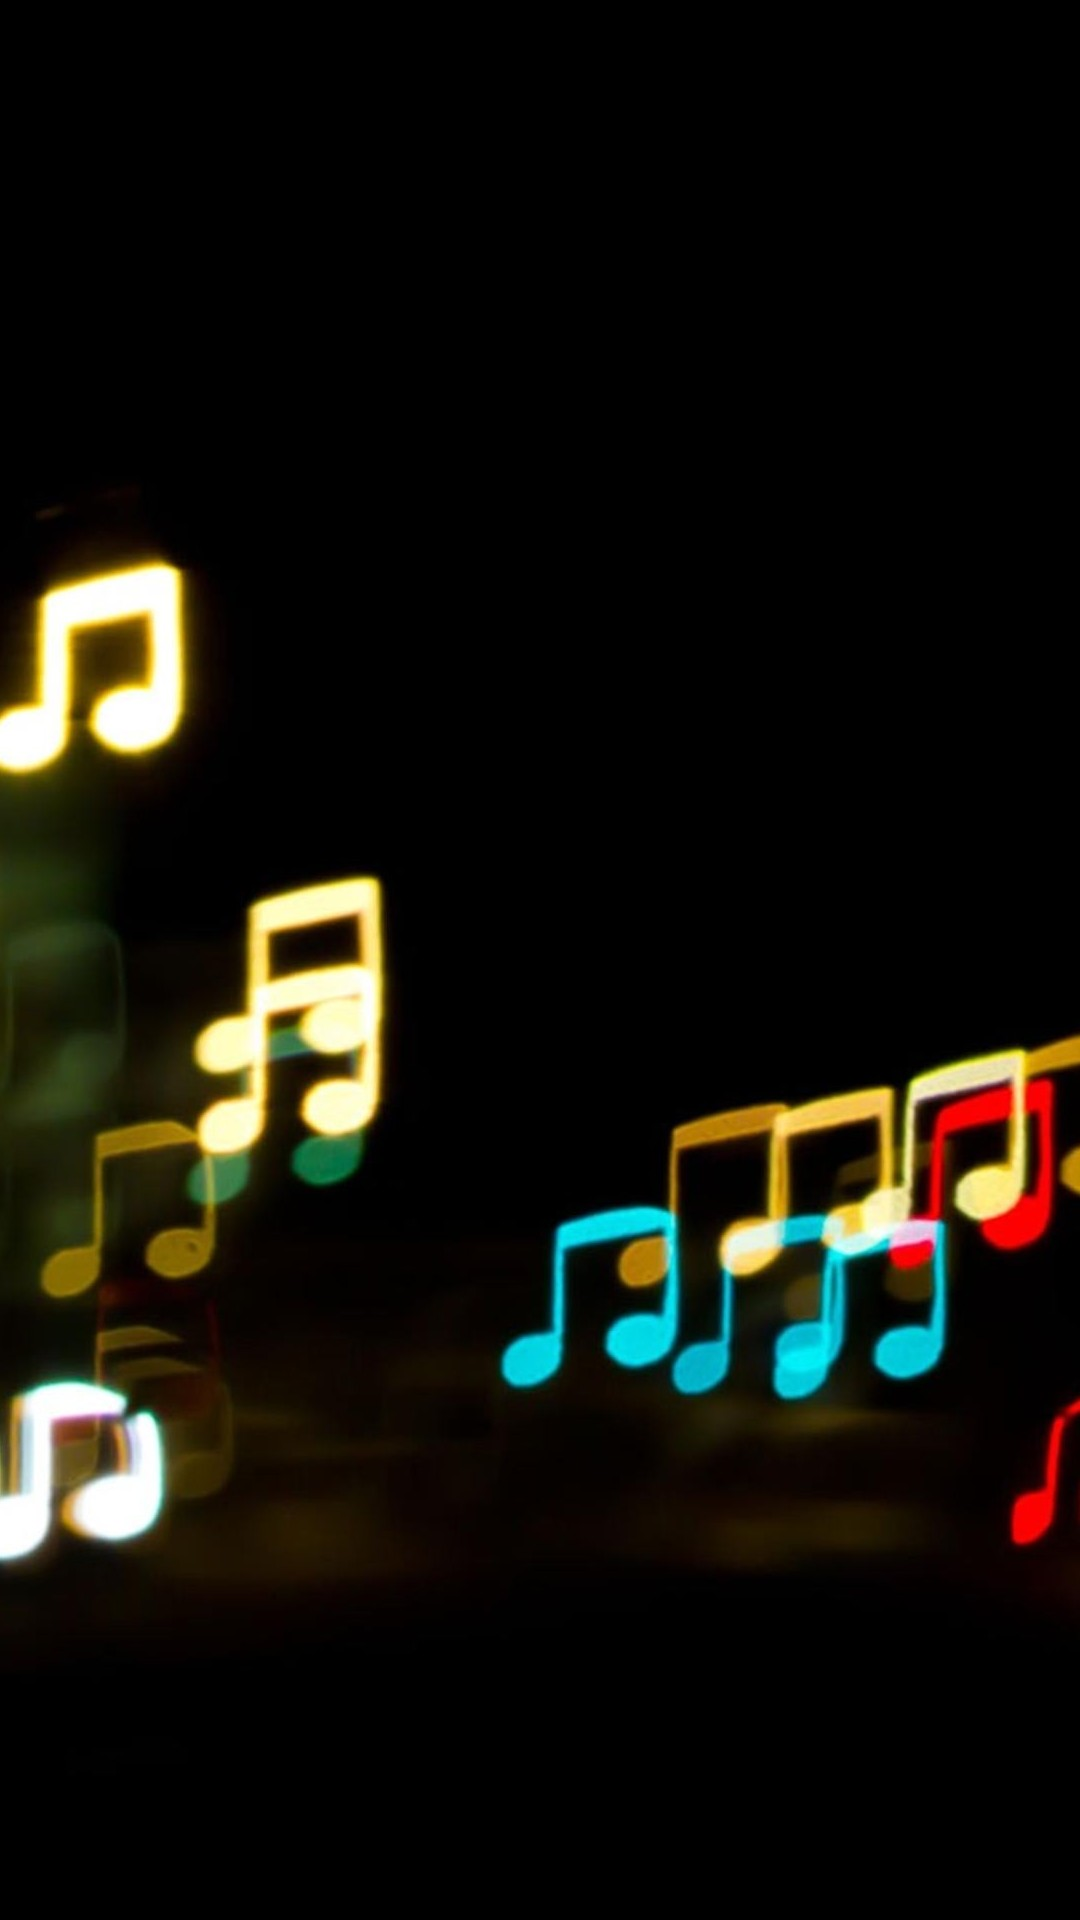 Neon Sign Iphone Wallpaper Download Galaxy Music Wallpaper Gallery